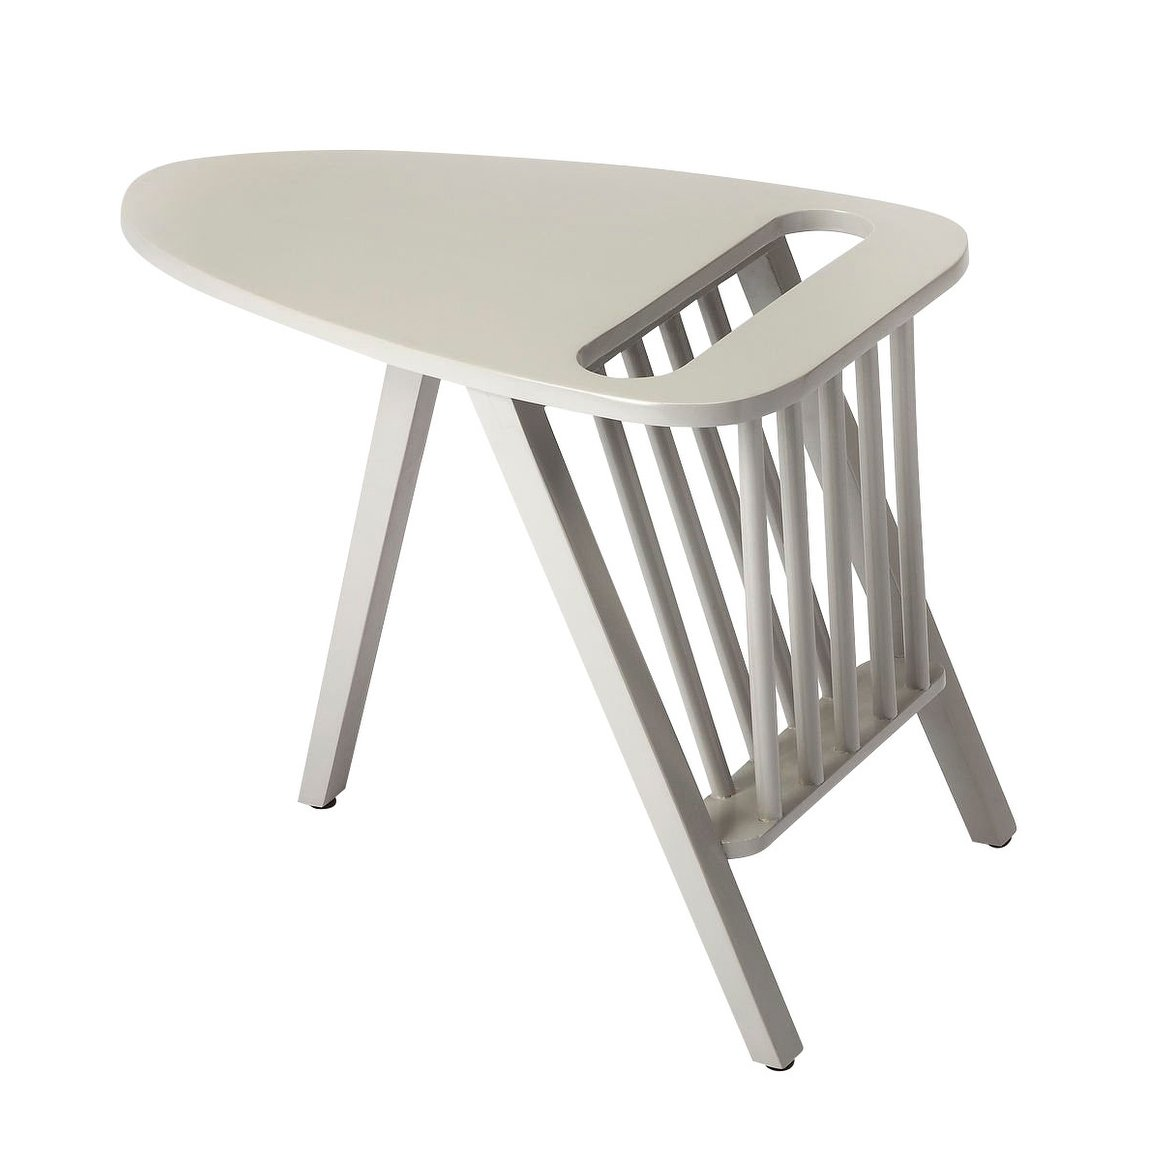 offex lowery solid wood gray accent table free shipping today white bedside cabinets long counter height high coffee patio umbrella base leick corner computer desk champagne